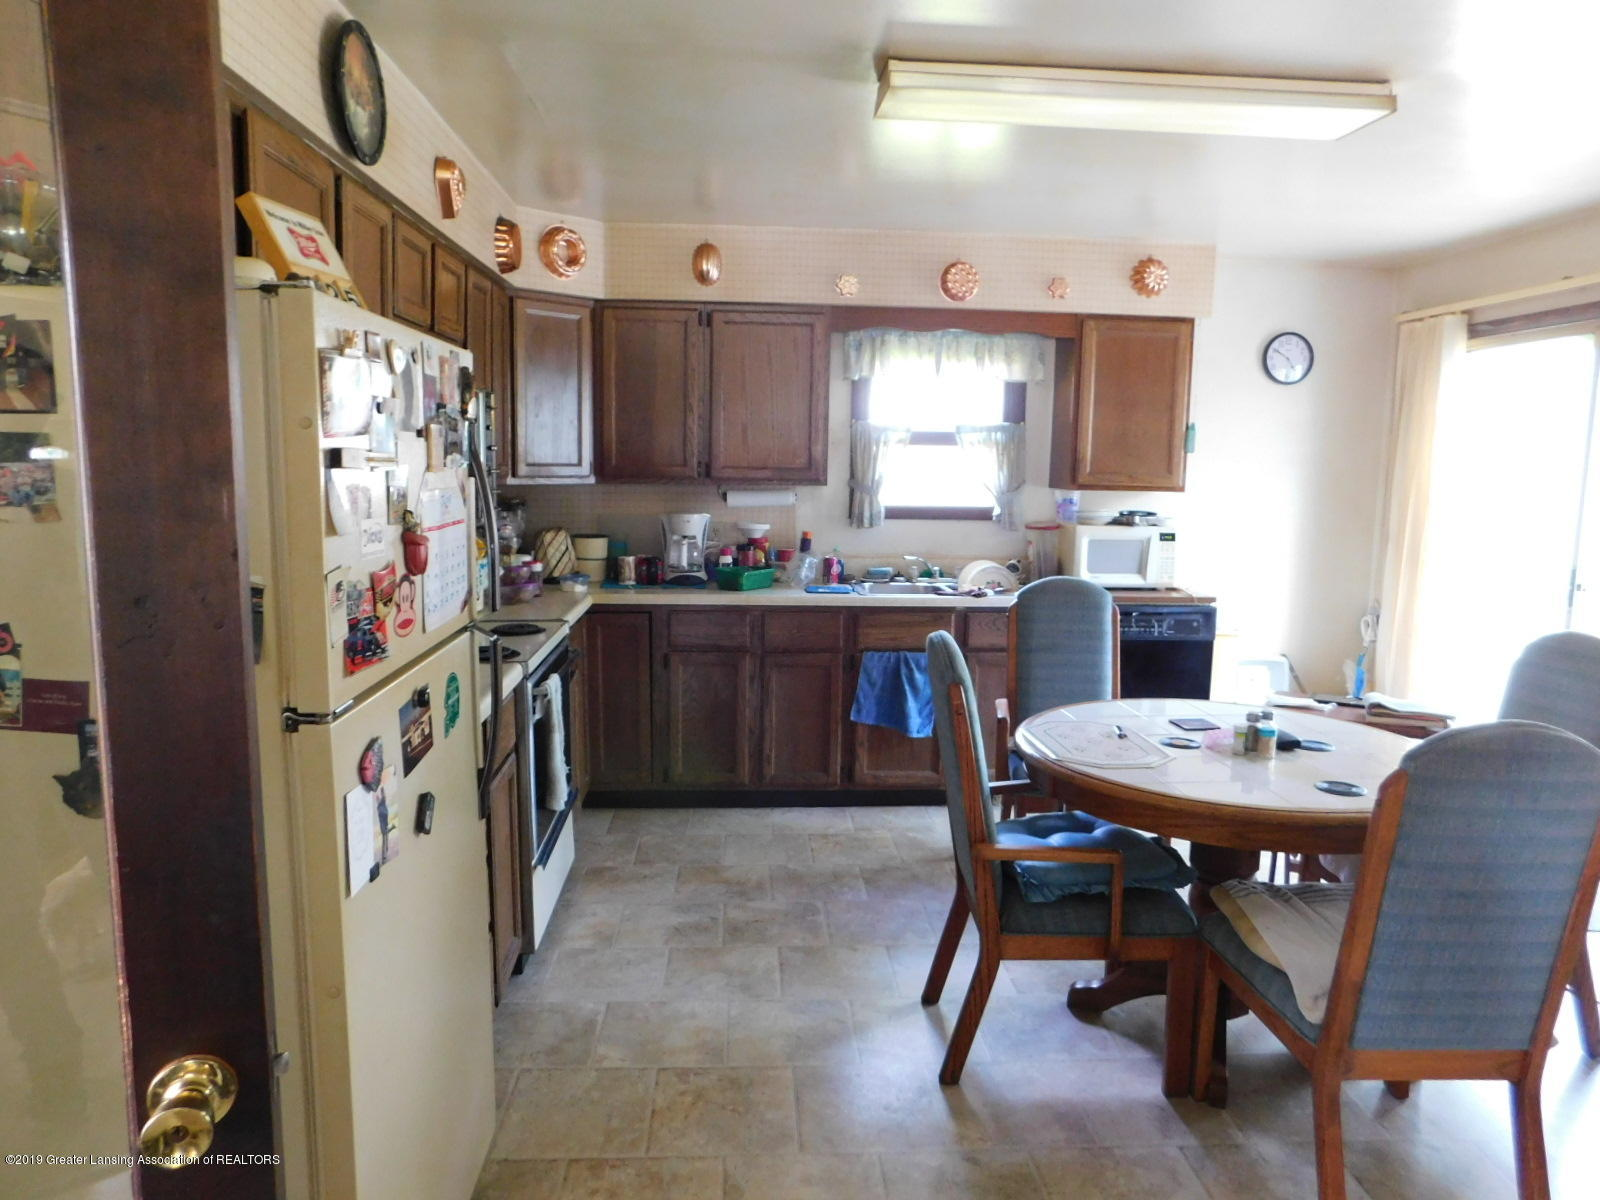 405 Armstrong St - 6_405 - 6